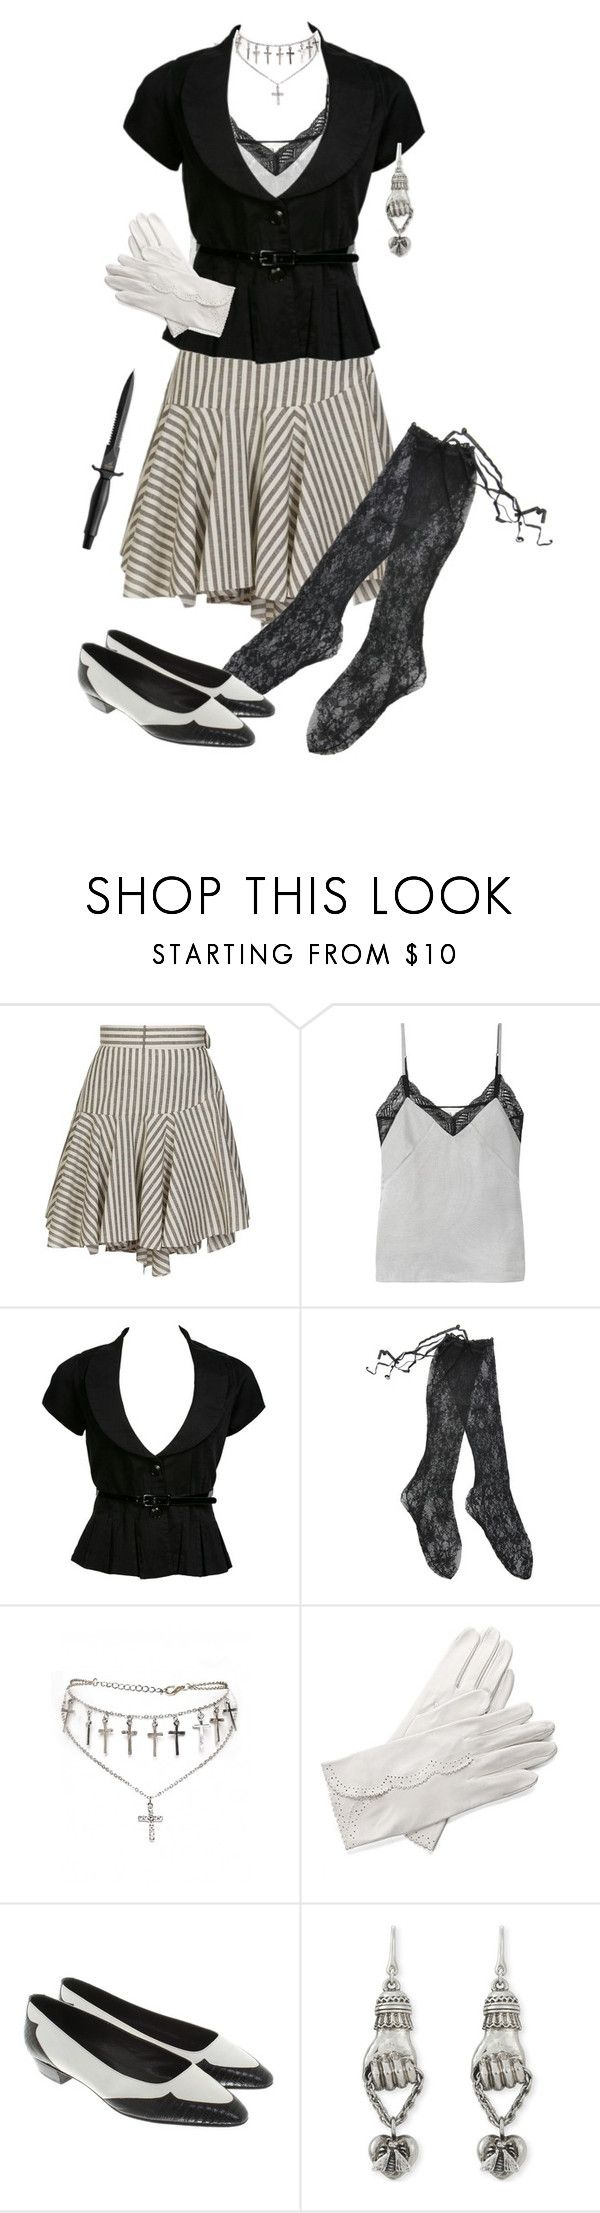 """""""Xe's Respectable"""" by vulture95 ❤ liked on Polyvore featuring Loewe, Maje, Fogal, Aspinal of London, Prada and Gucci"""